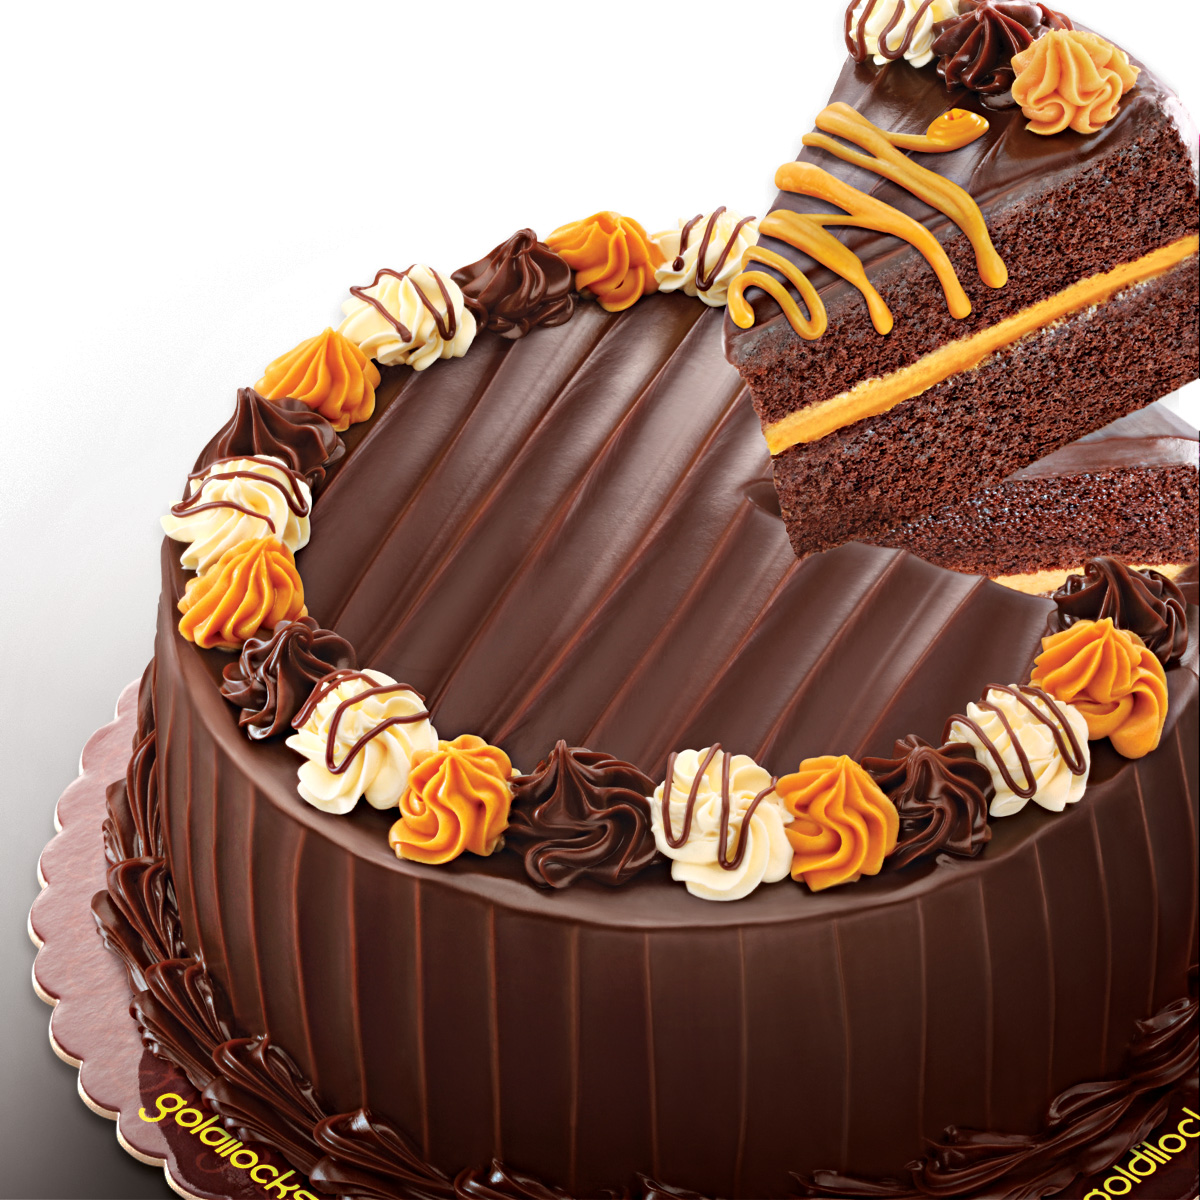 Chocolate Decadence Cake Goldilocks